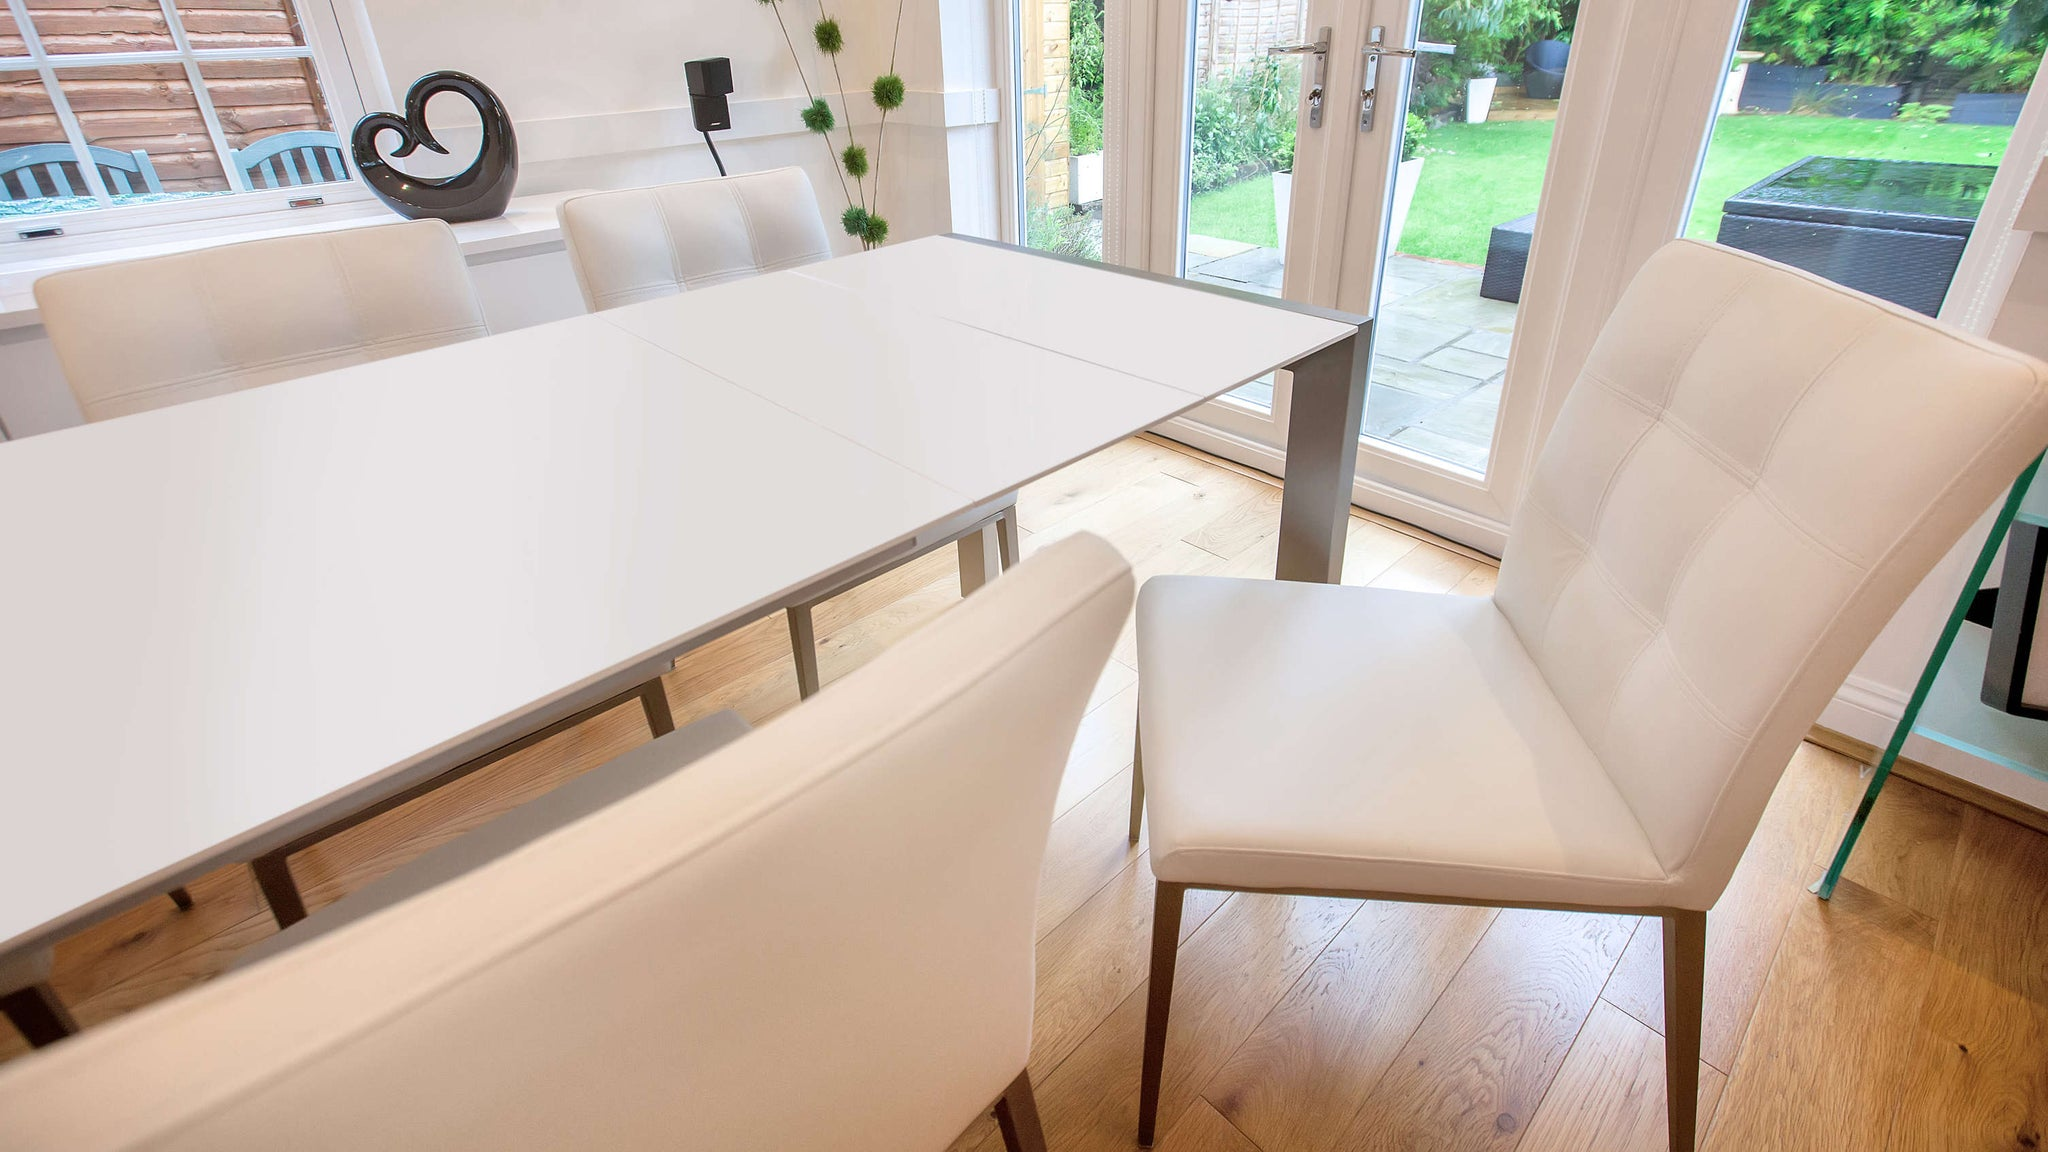 Comfortable Dining Chairs and White Extending Dining Table